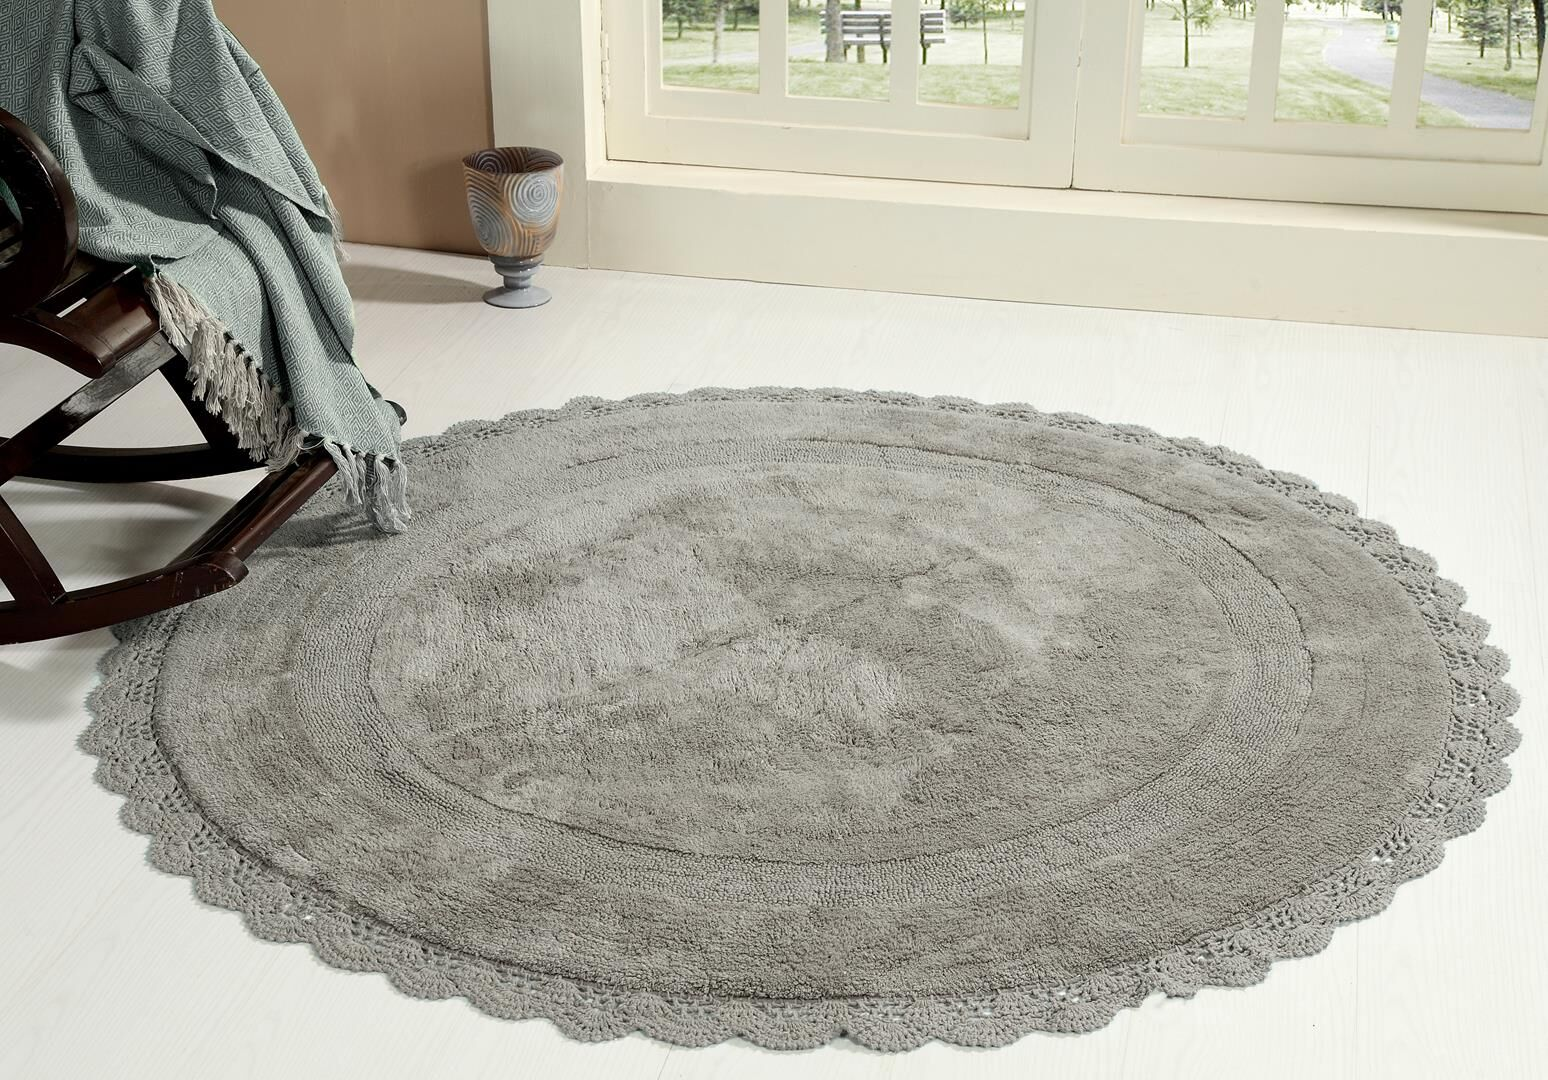 Wininger Round Crochet Designer Plush Cotton Rug (60 inches, Grey)